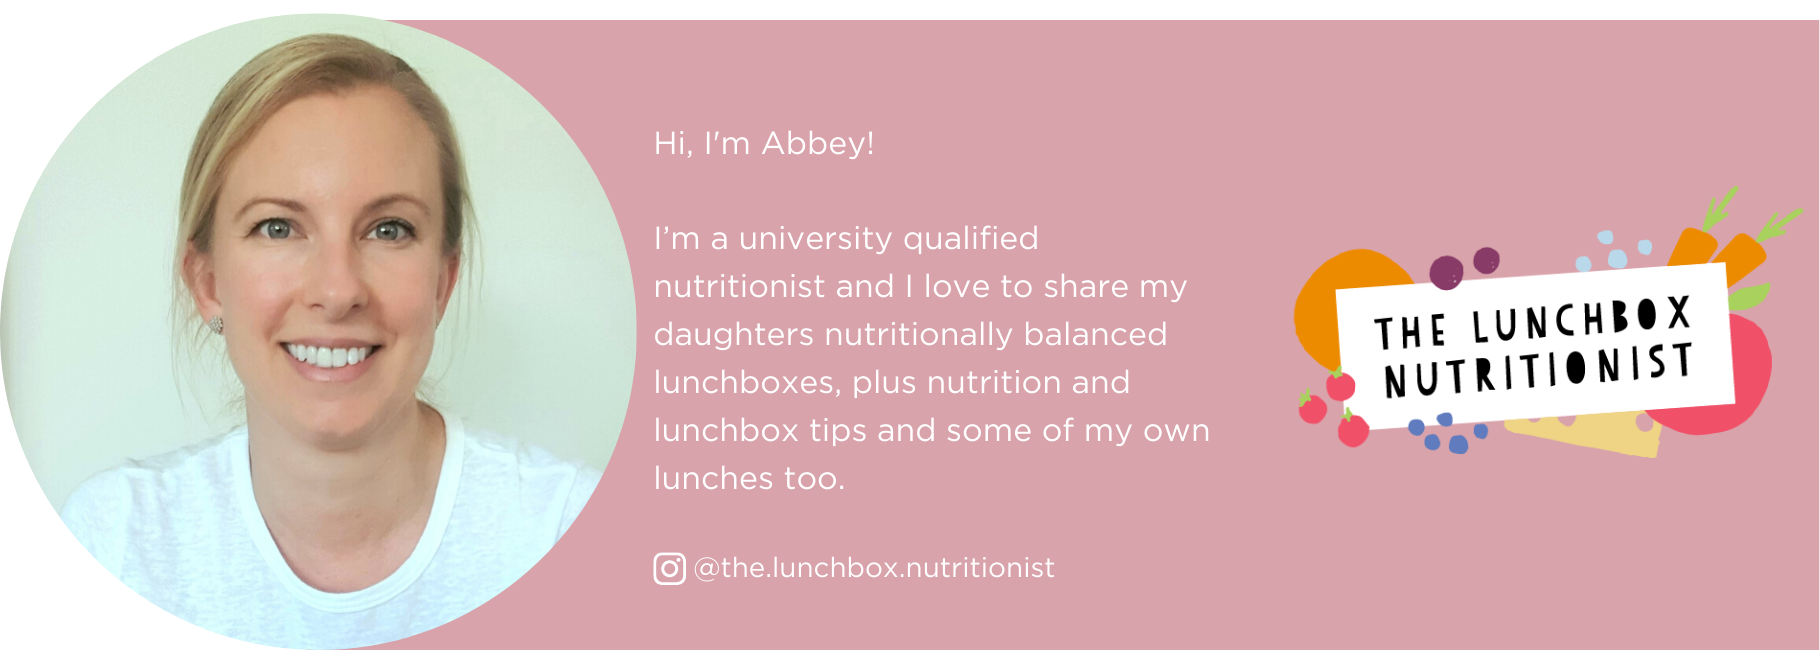 Abby Nutritionist